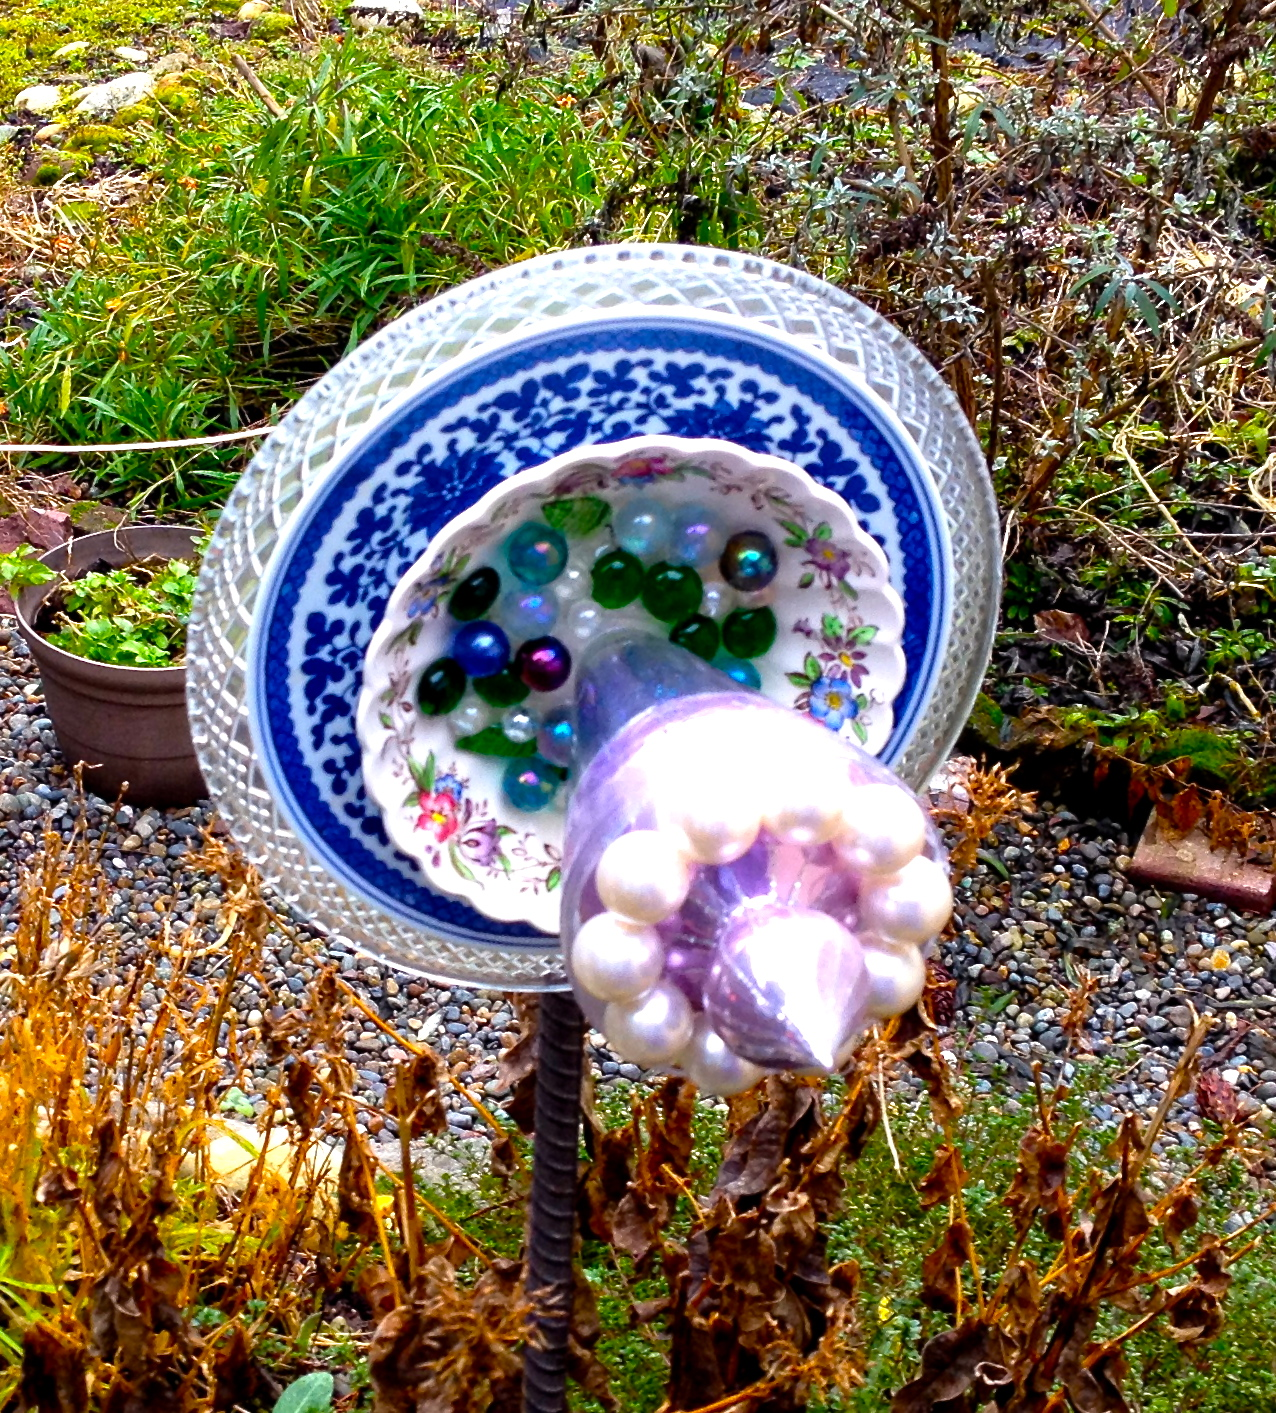 Unwritten creativity glass garden flowers for mom the for Recycled glass flowers